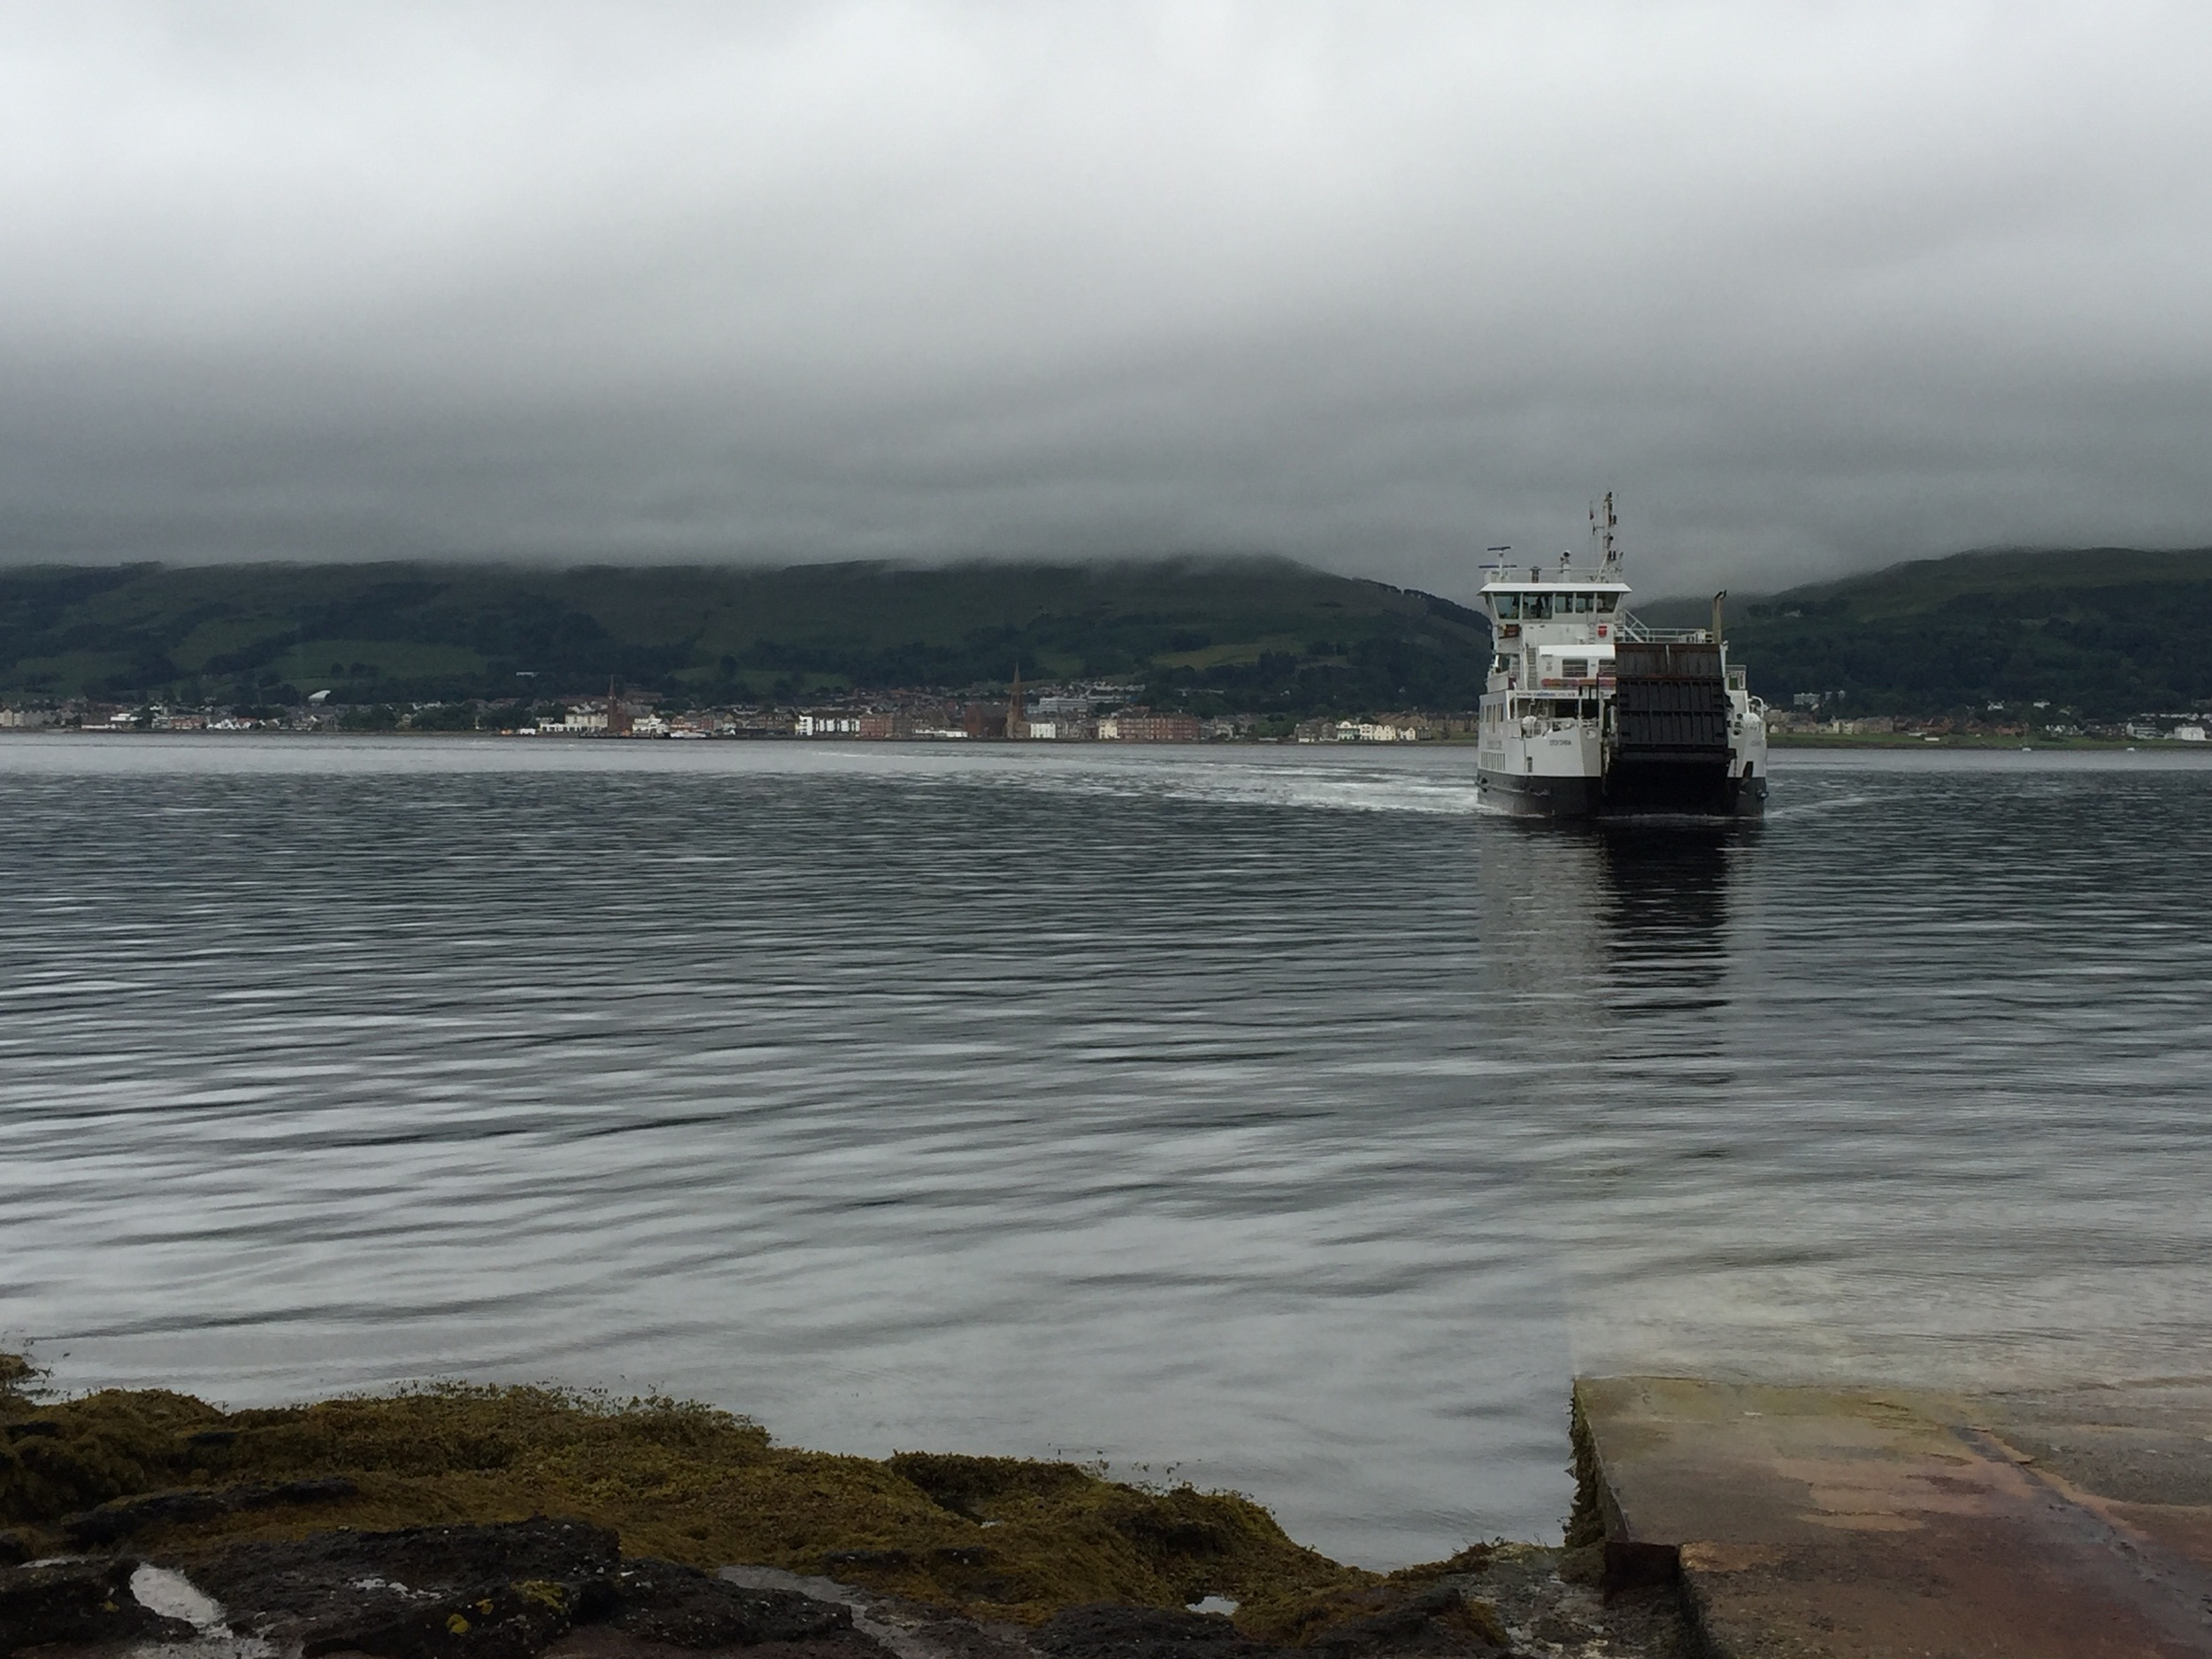 The ferry to the island.